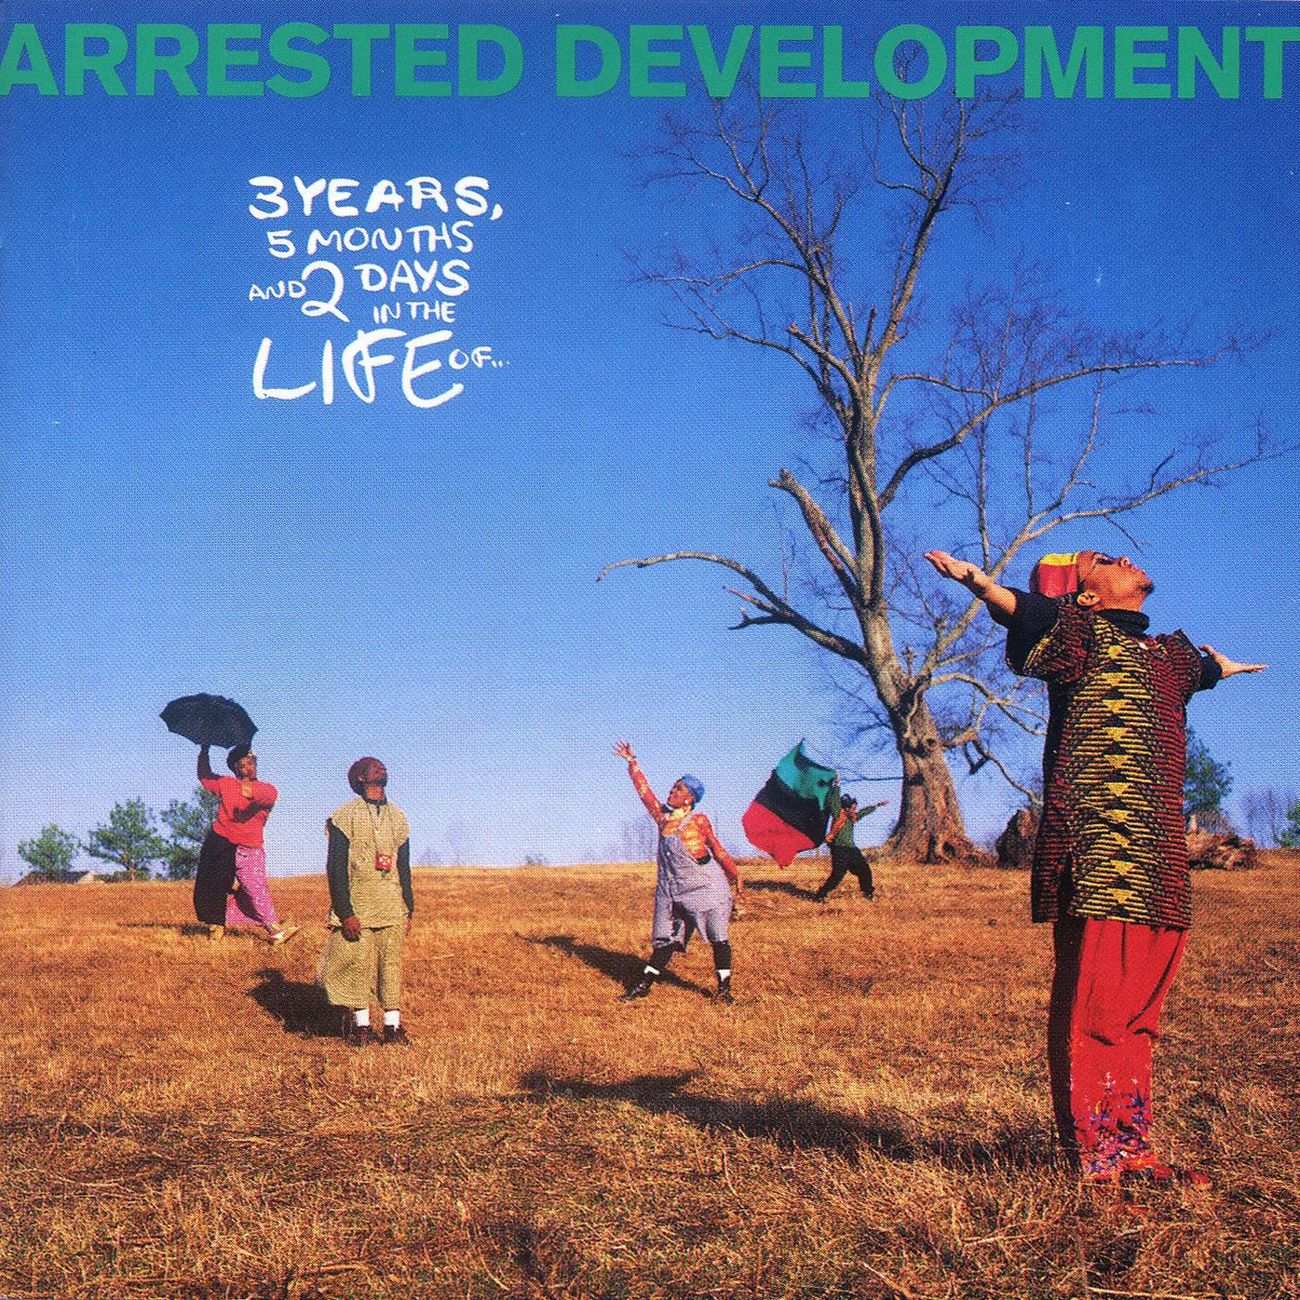 Arrested Development - 3 Years, 5 Months & 2 Days in the Life of... (1992)